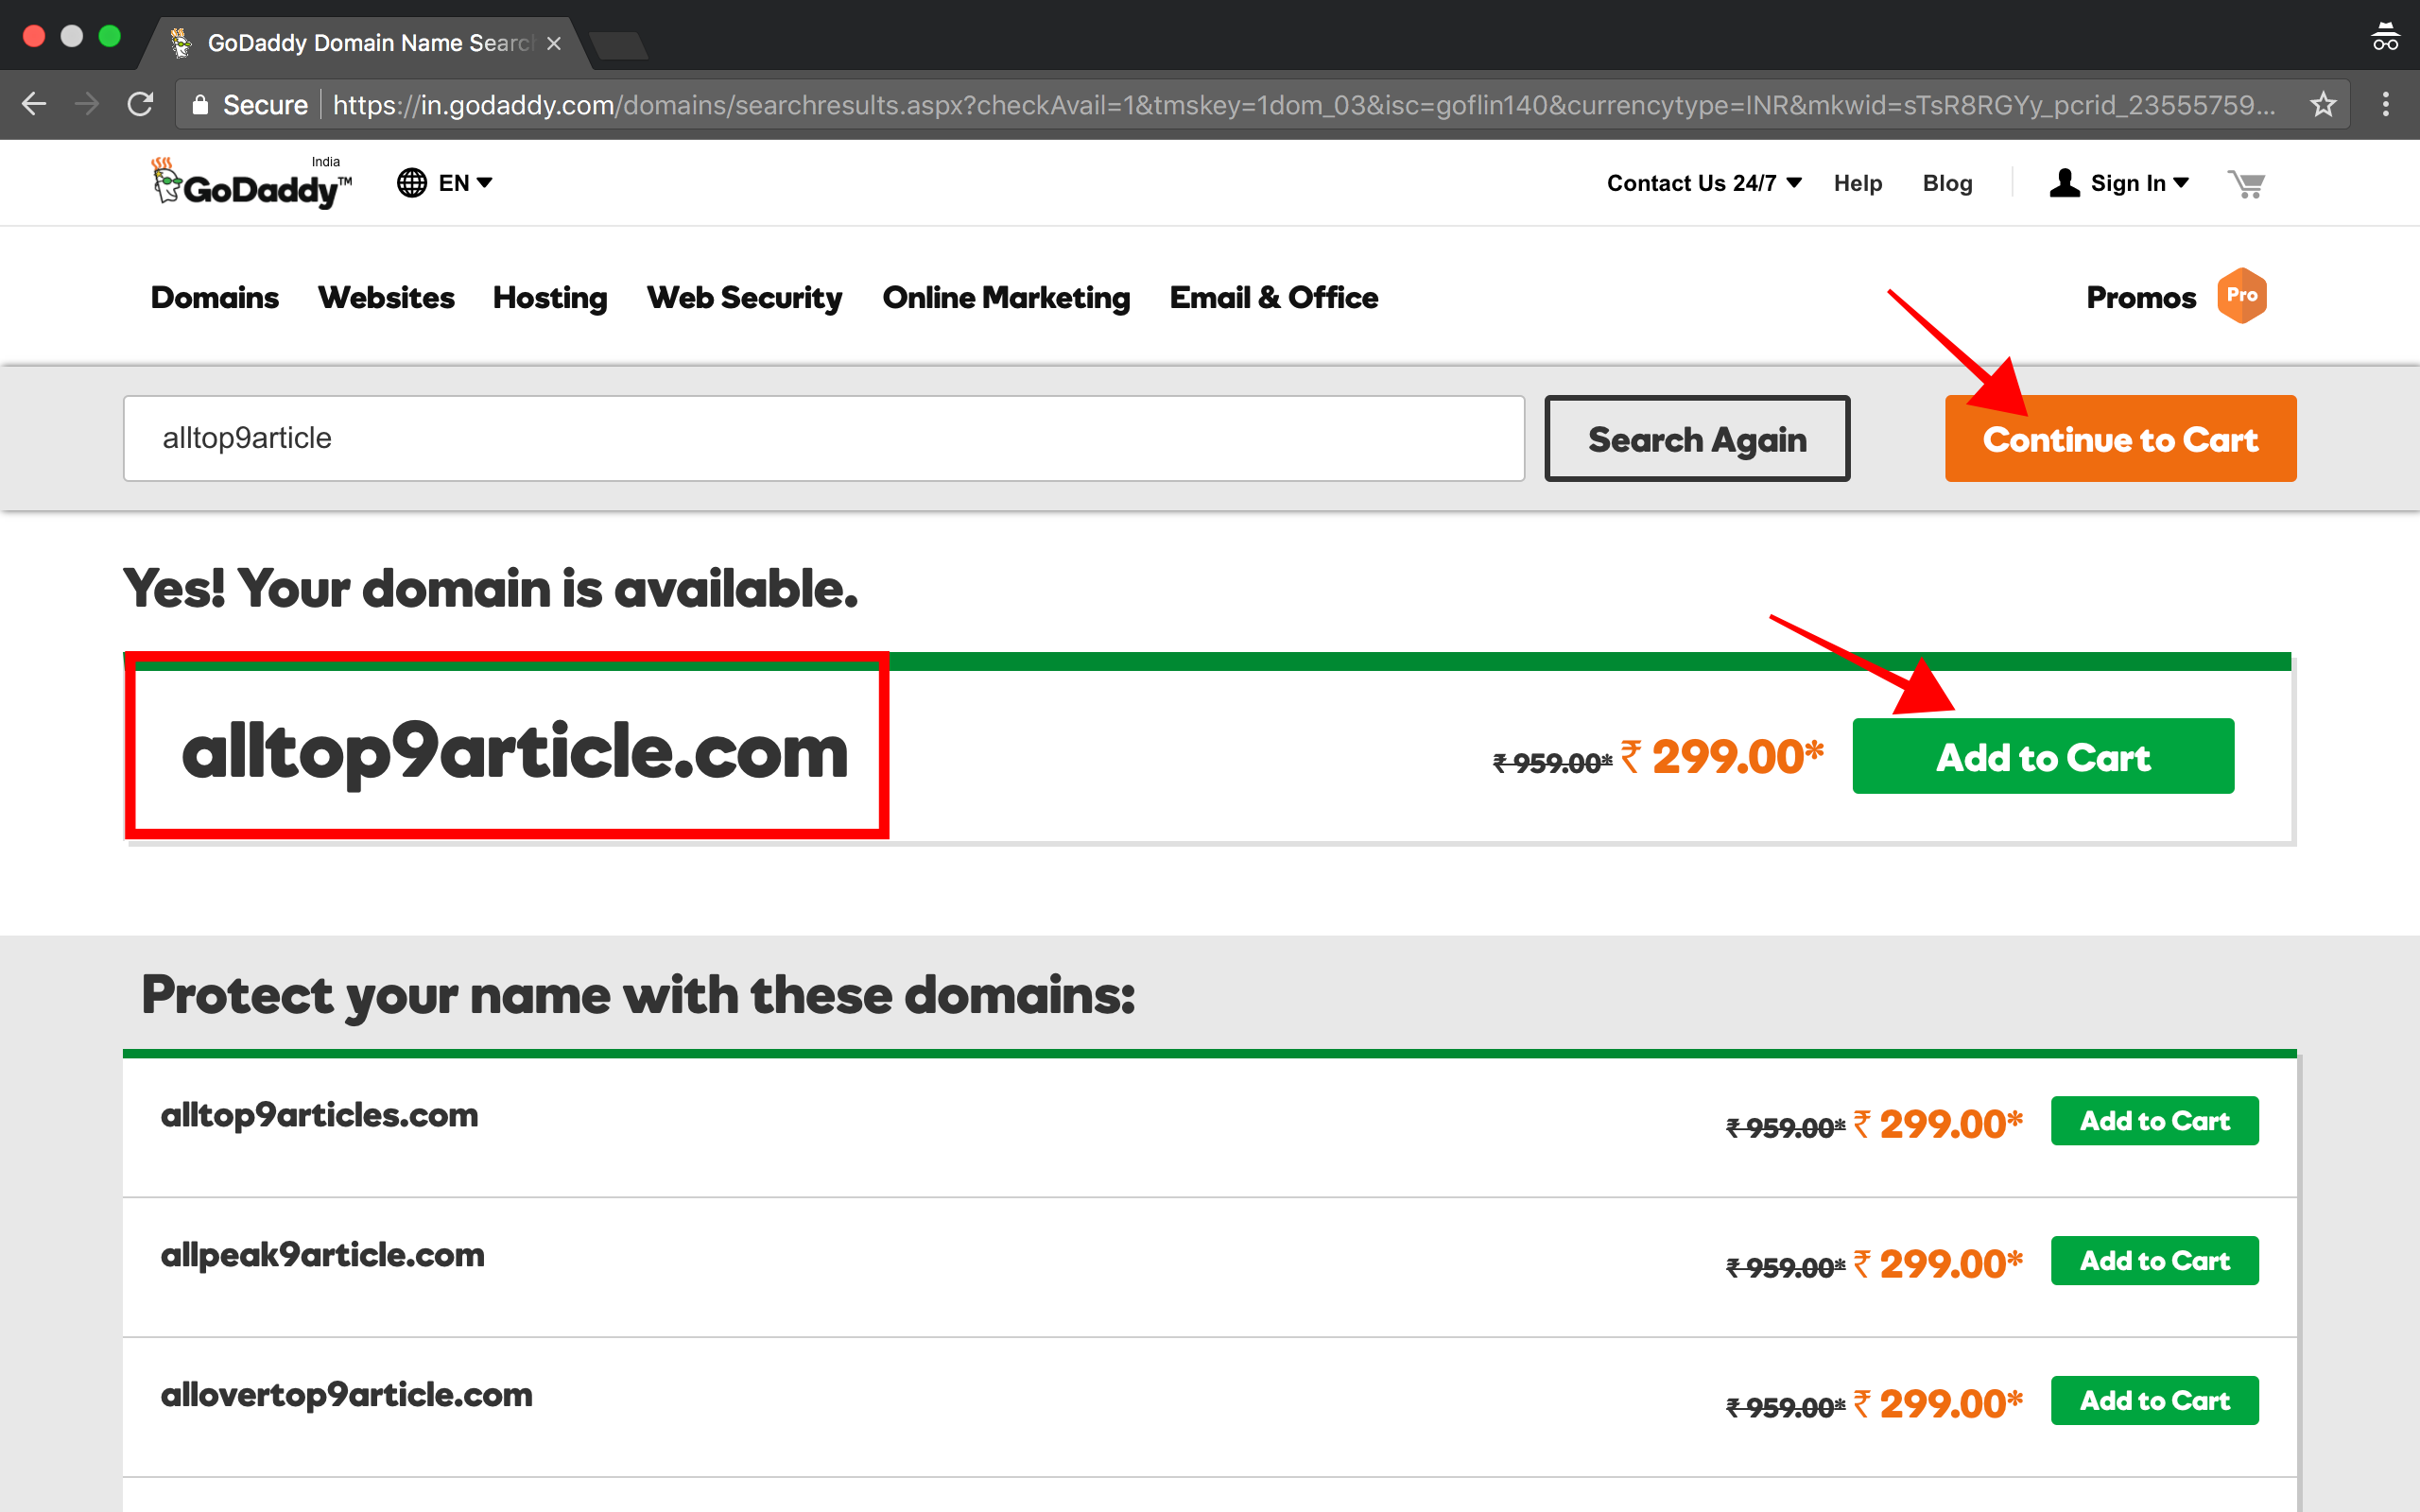 select-domain-add-to-cart-then-select-continue-to-cart